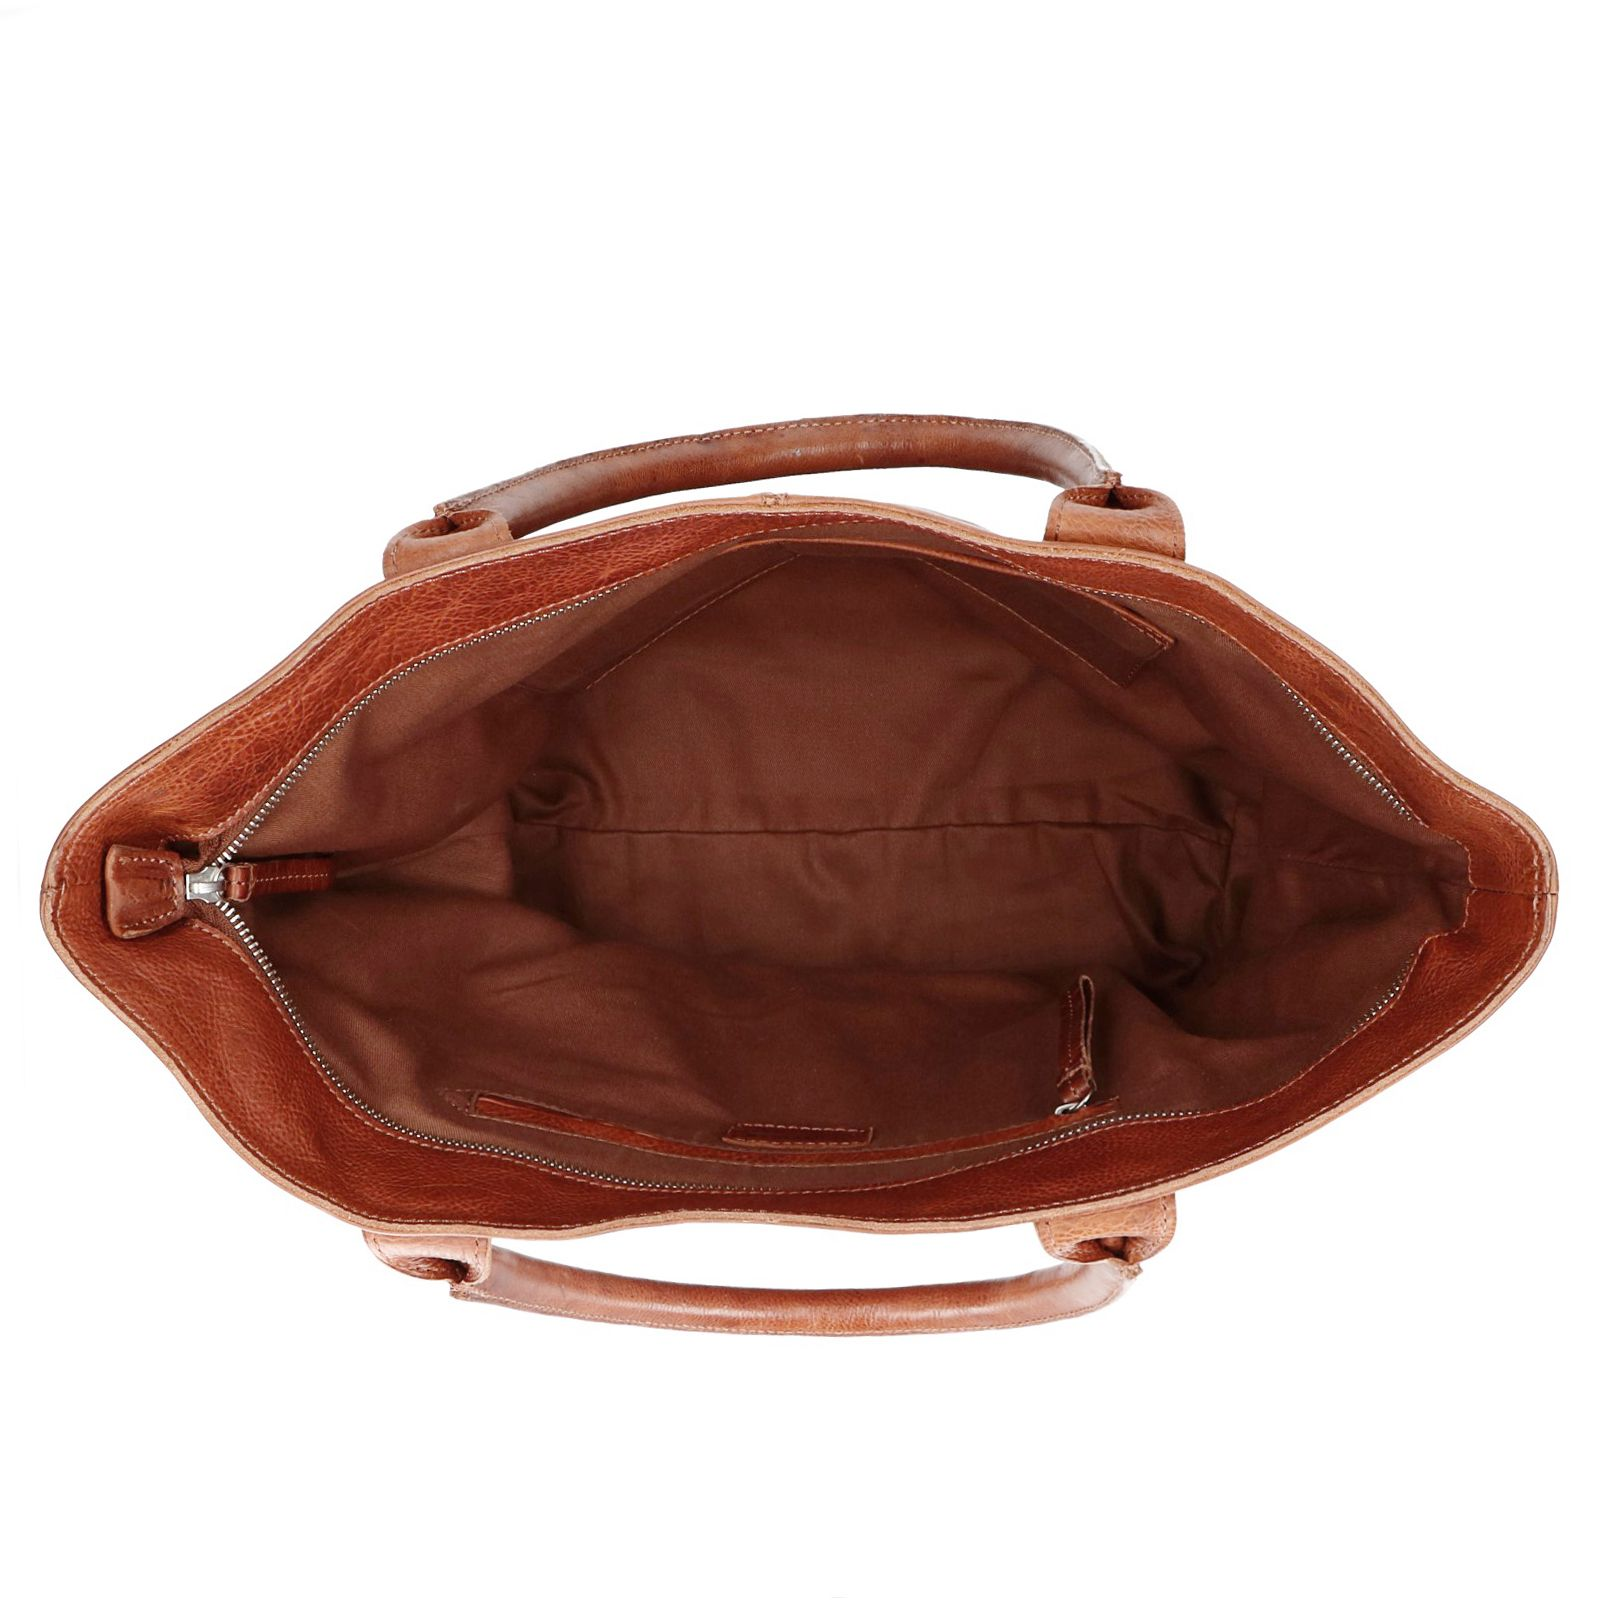 9472ac789c7 Cognac shopper - Tassen | MANFIELD